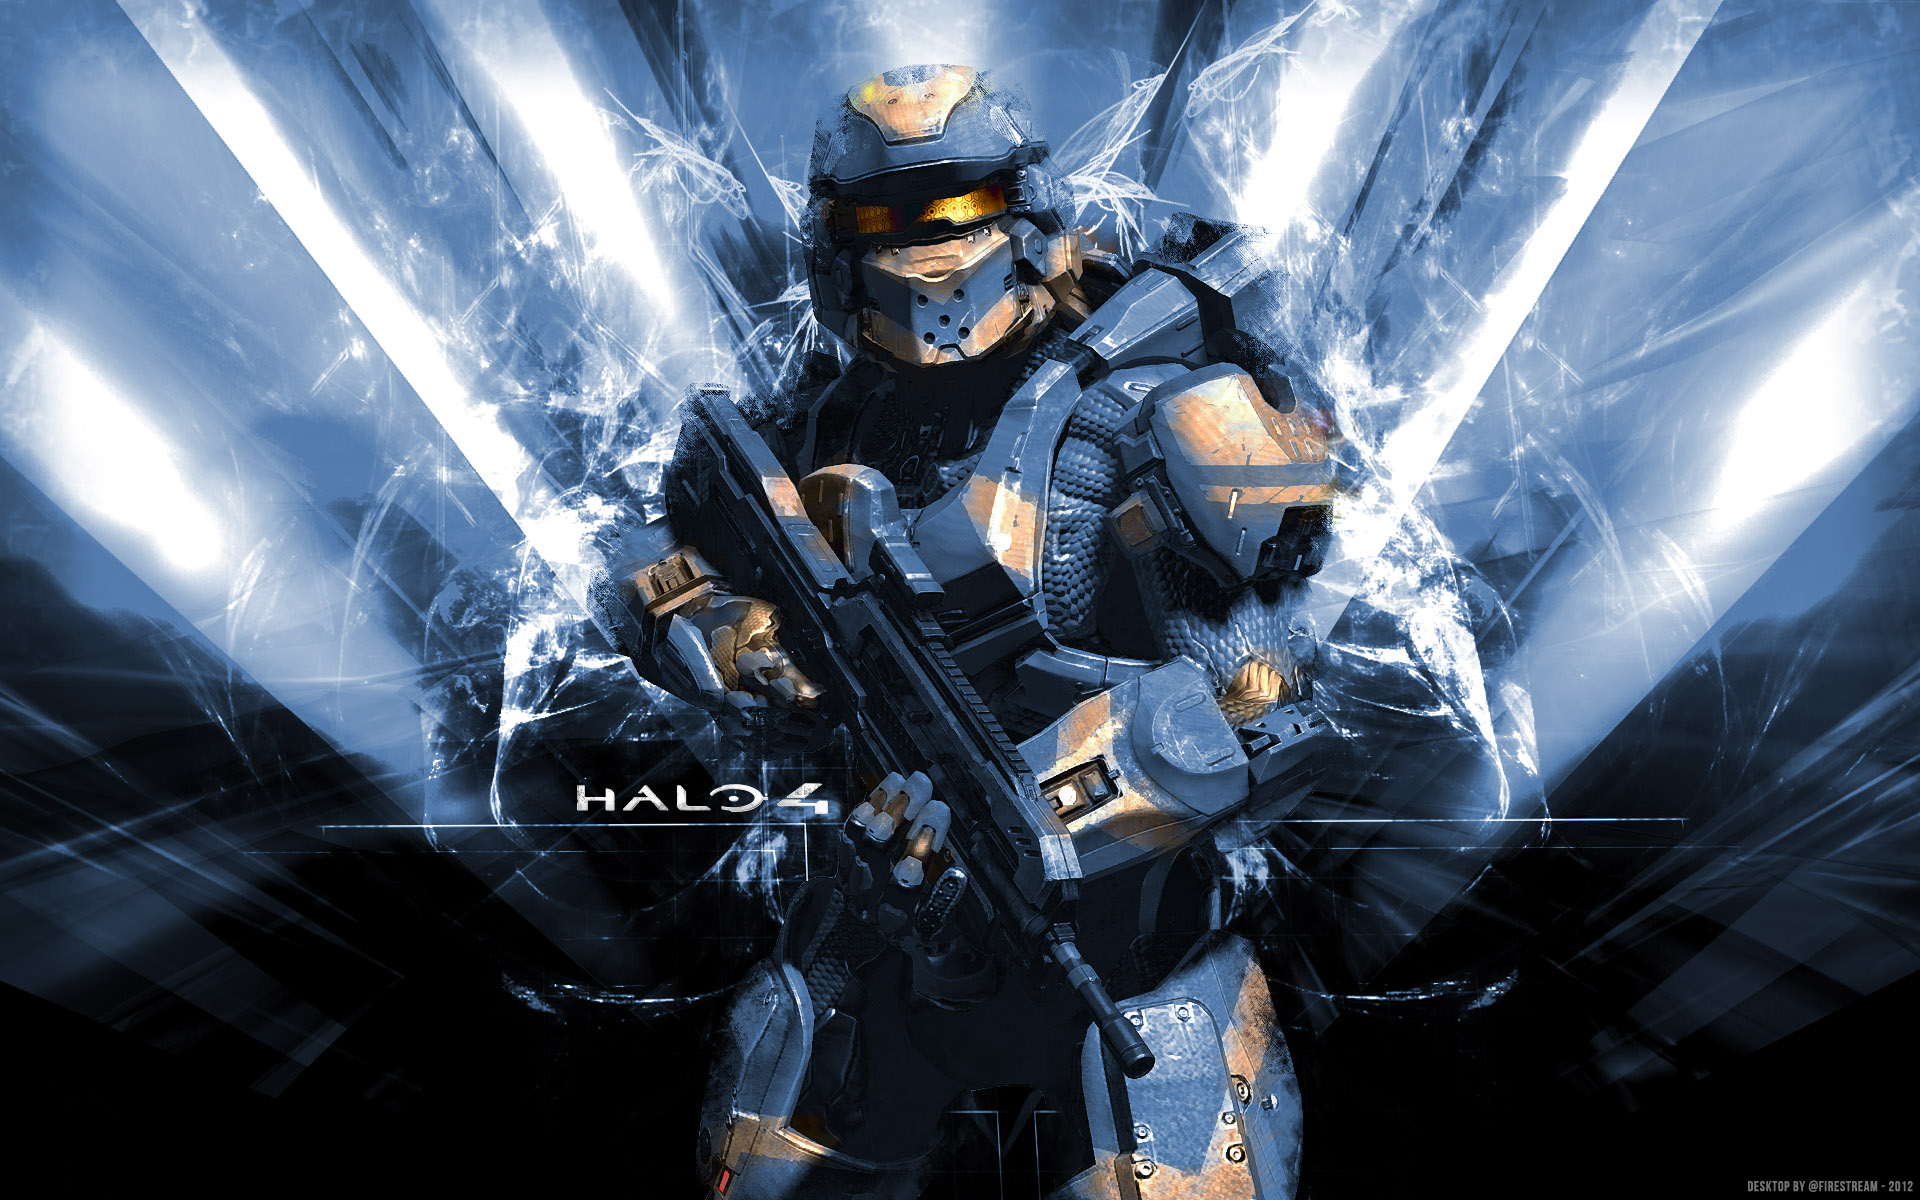 Halo 4 wallpaper | 1920x1200 | #52400